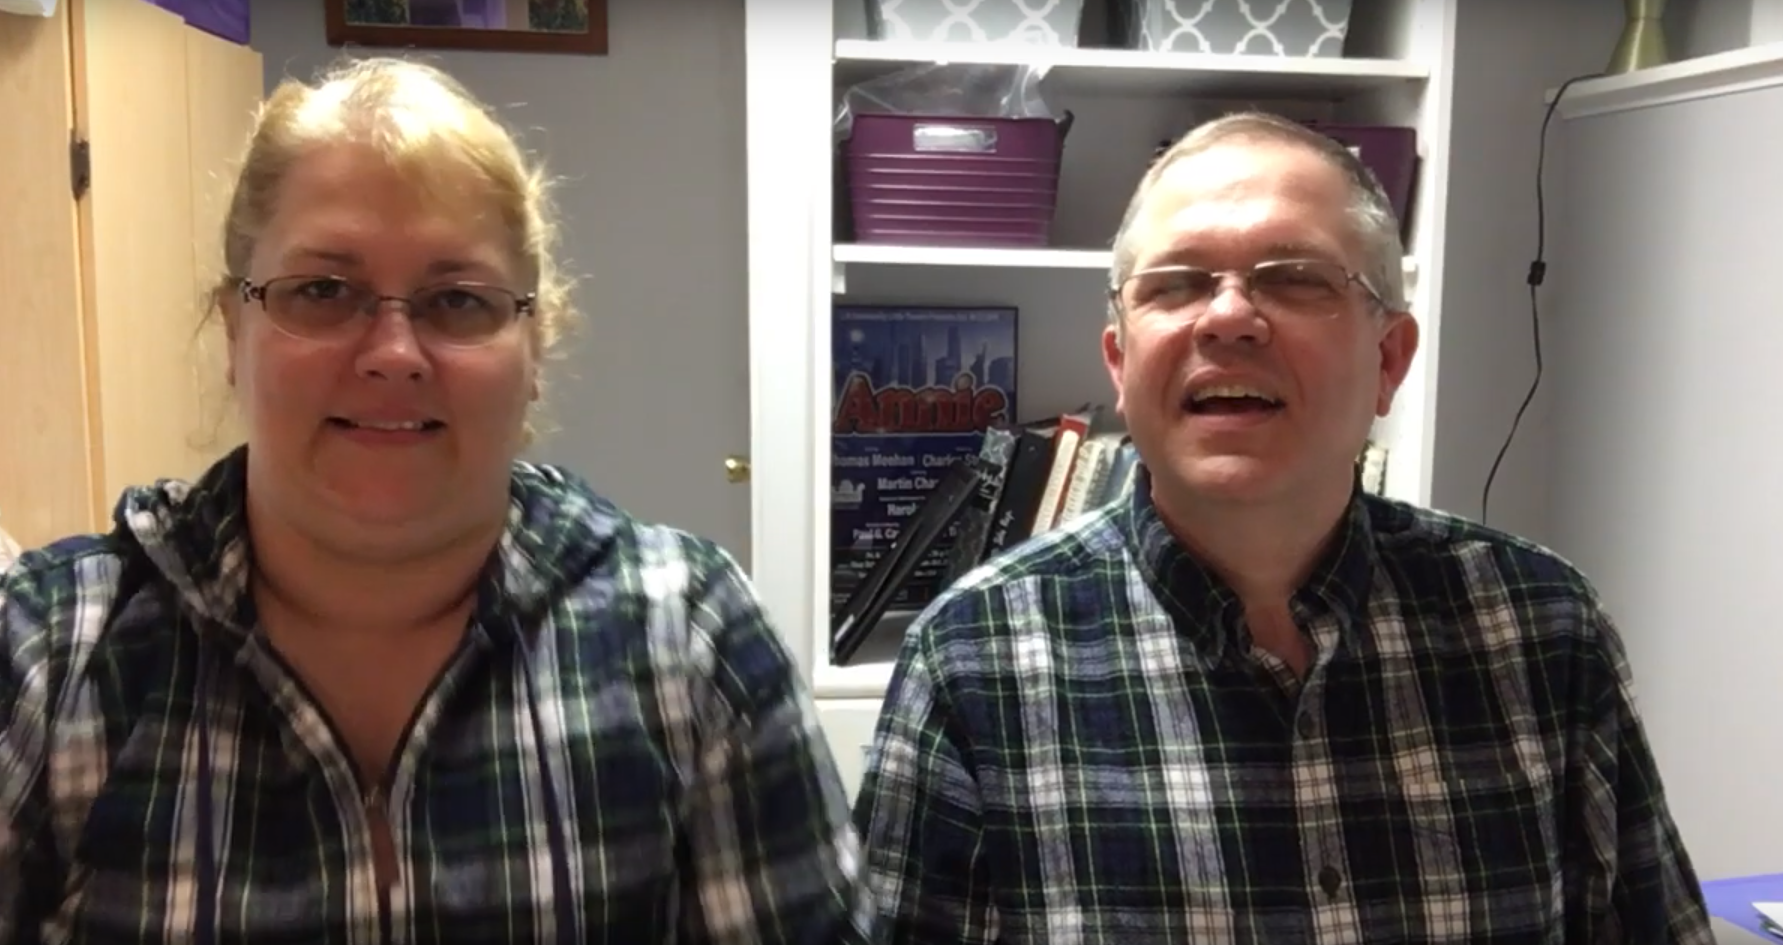 Beth and Bill singing hymns from home